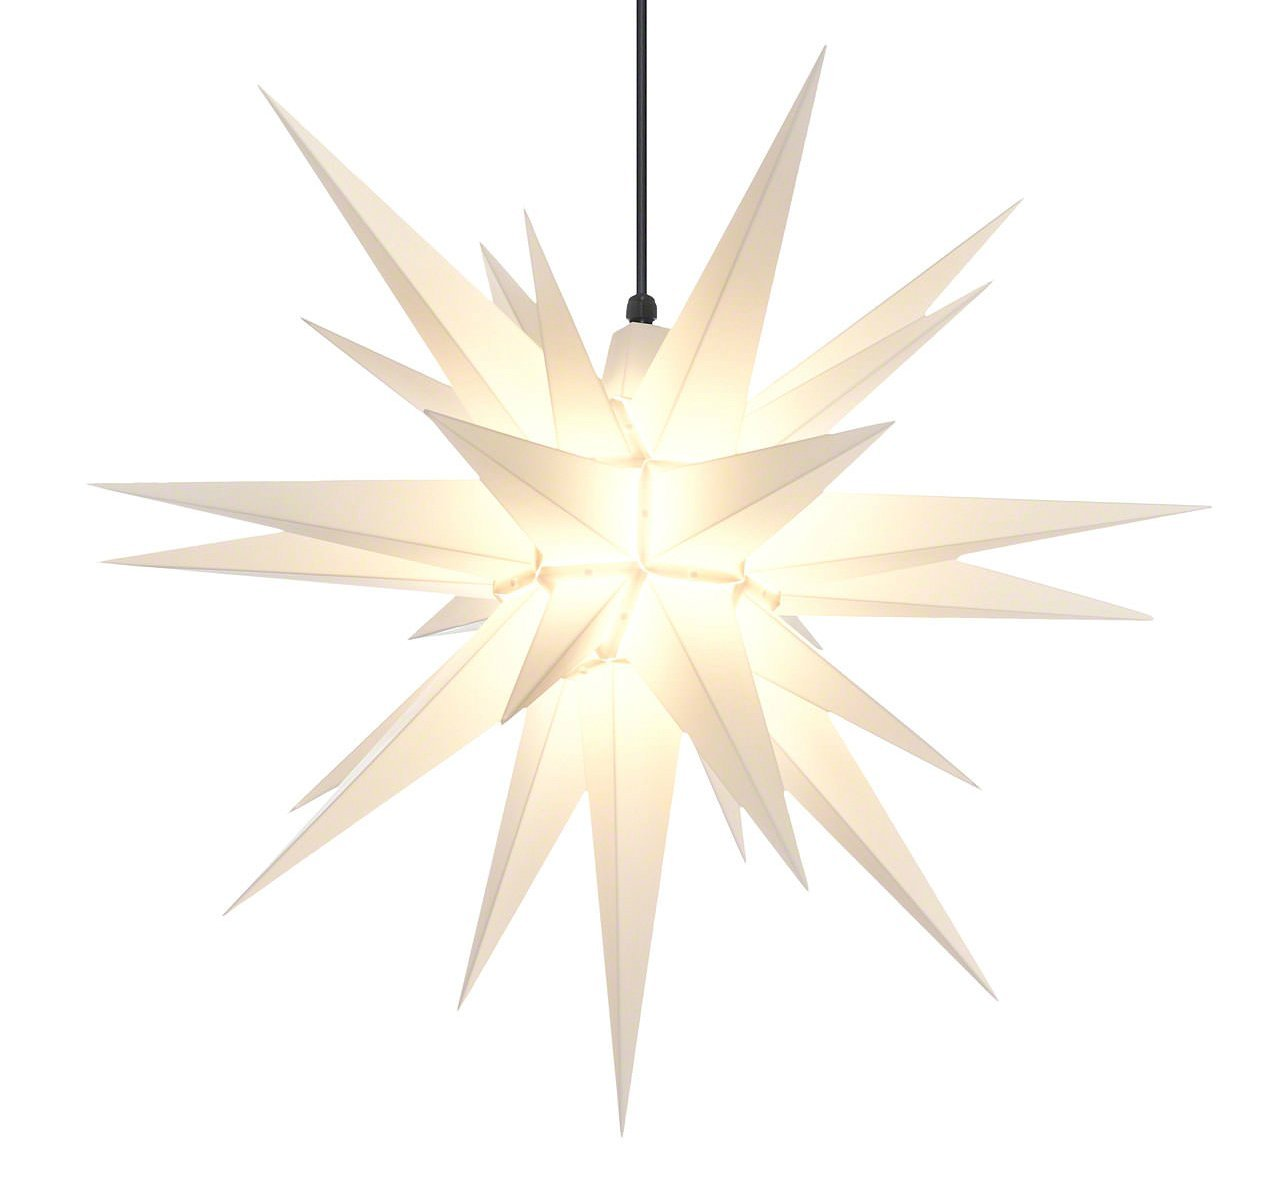 Elf Logic - 21'' Large White Moravian Star - Bright White Hanging Outdoor Christmas Star Light- Use as Exterior Holiday Decoration, Bethlehem Porch Light, 3D Fixture, or as Advent Star (Incandescent)